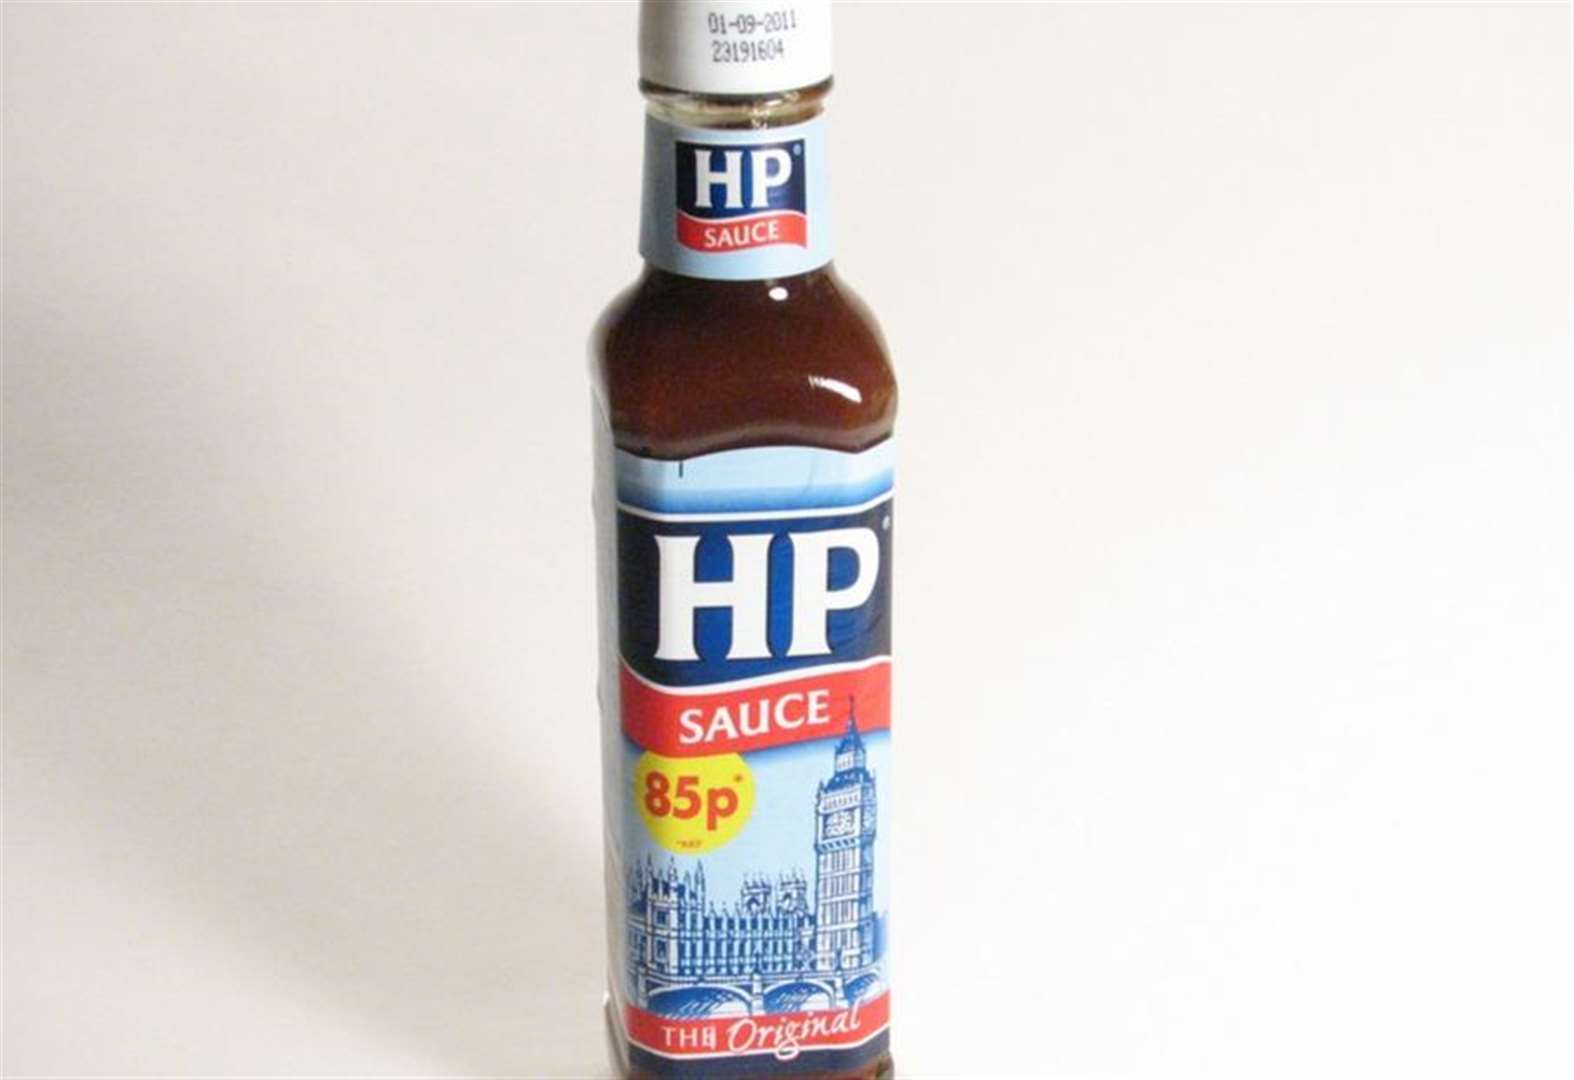 HP Sauce artist to display work